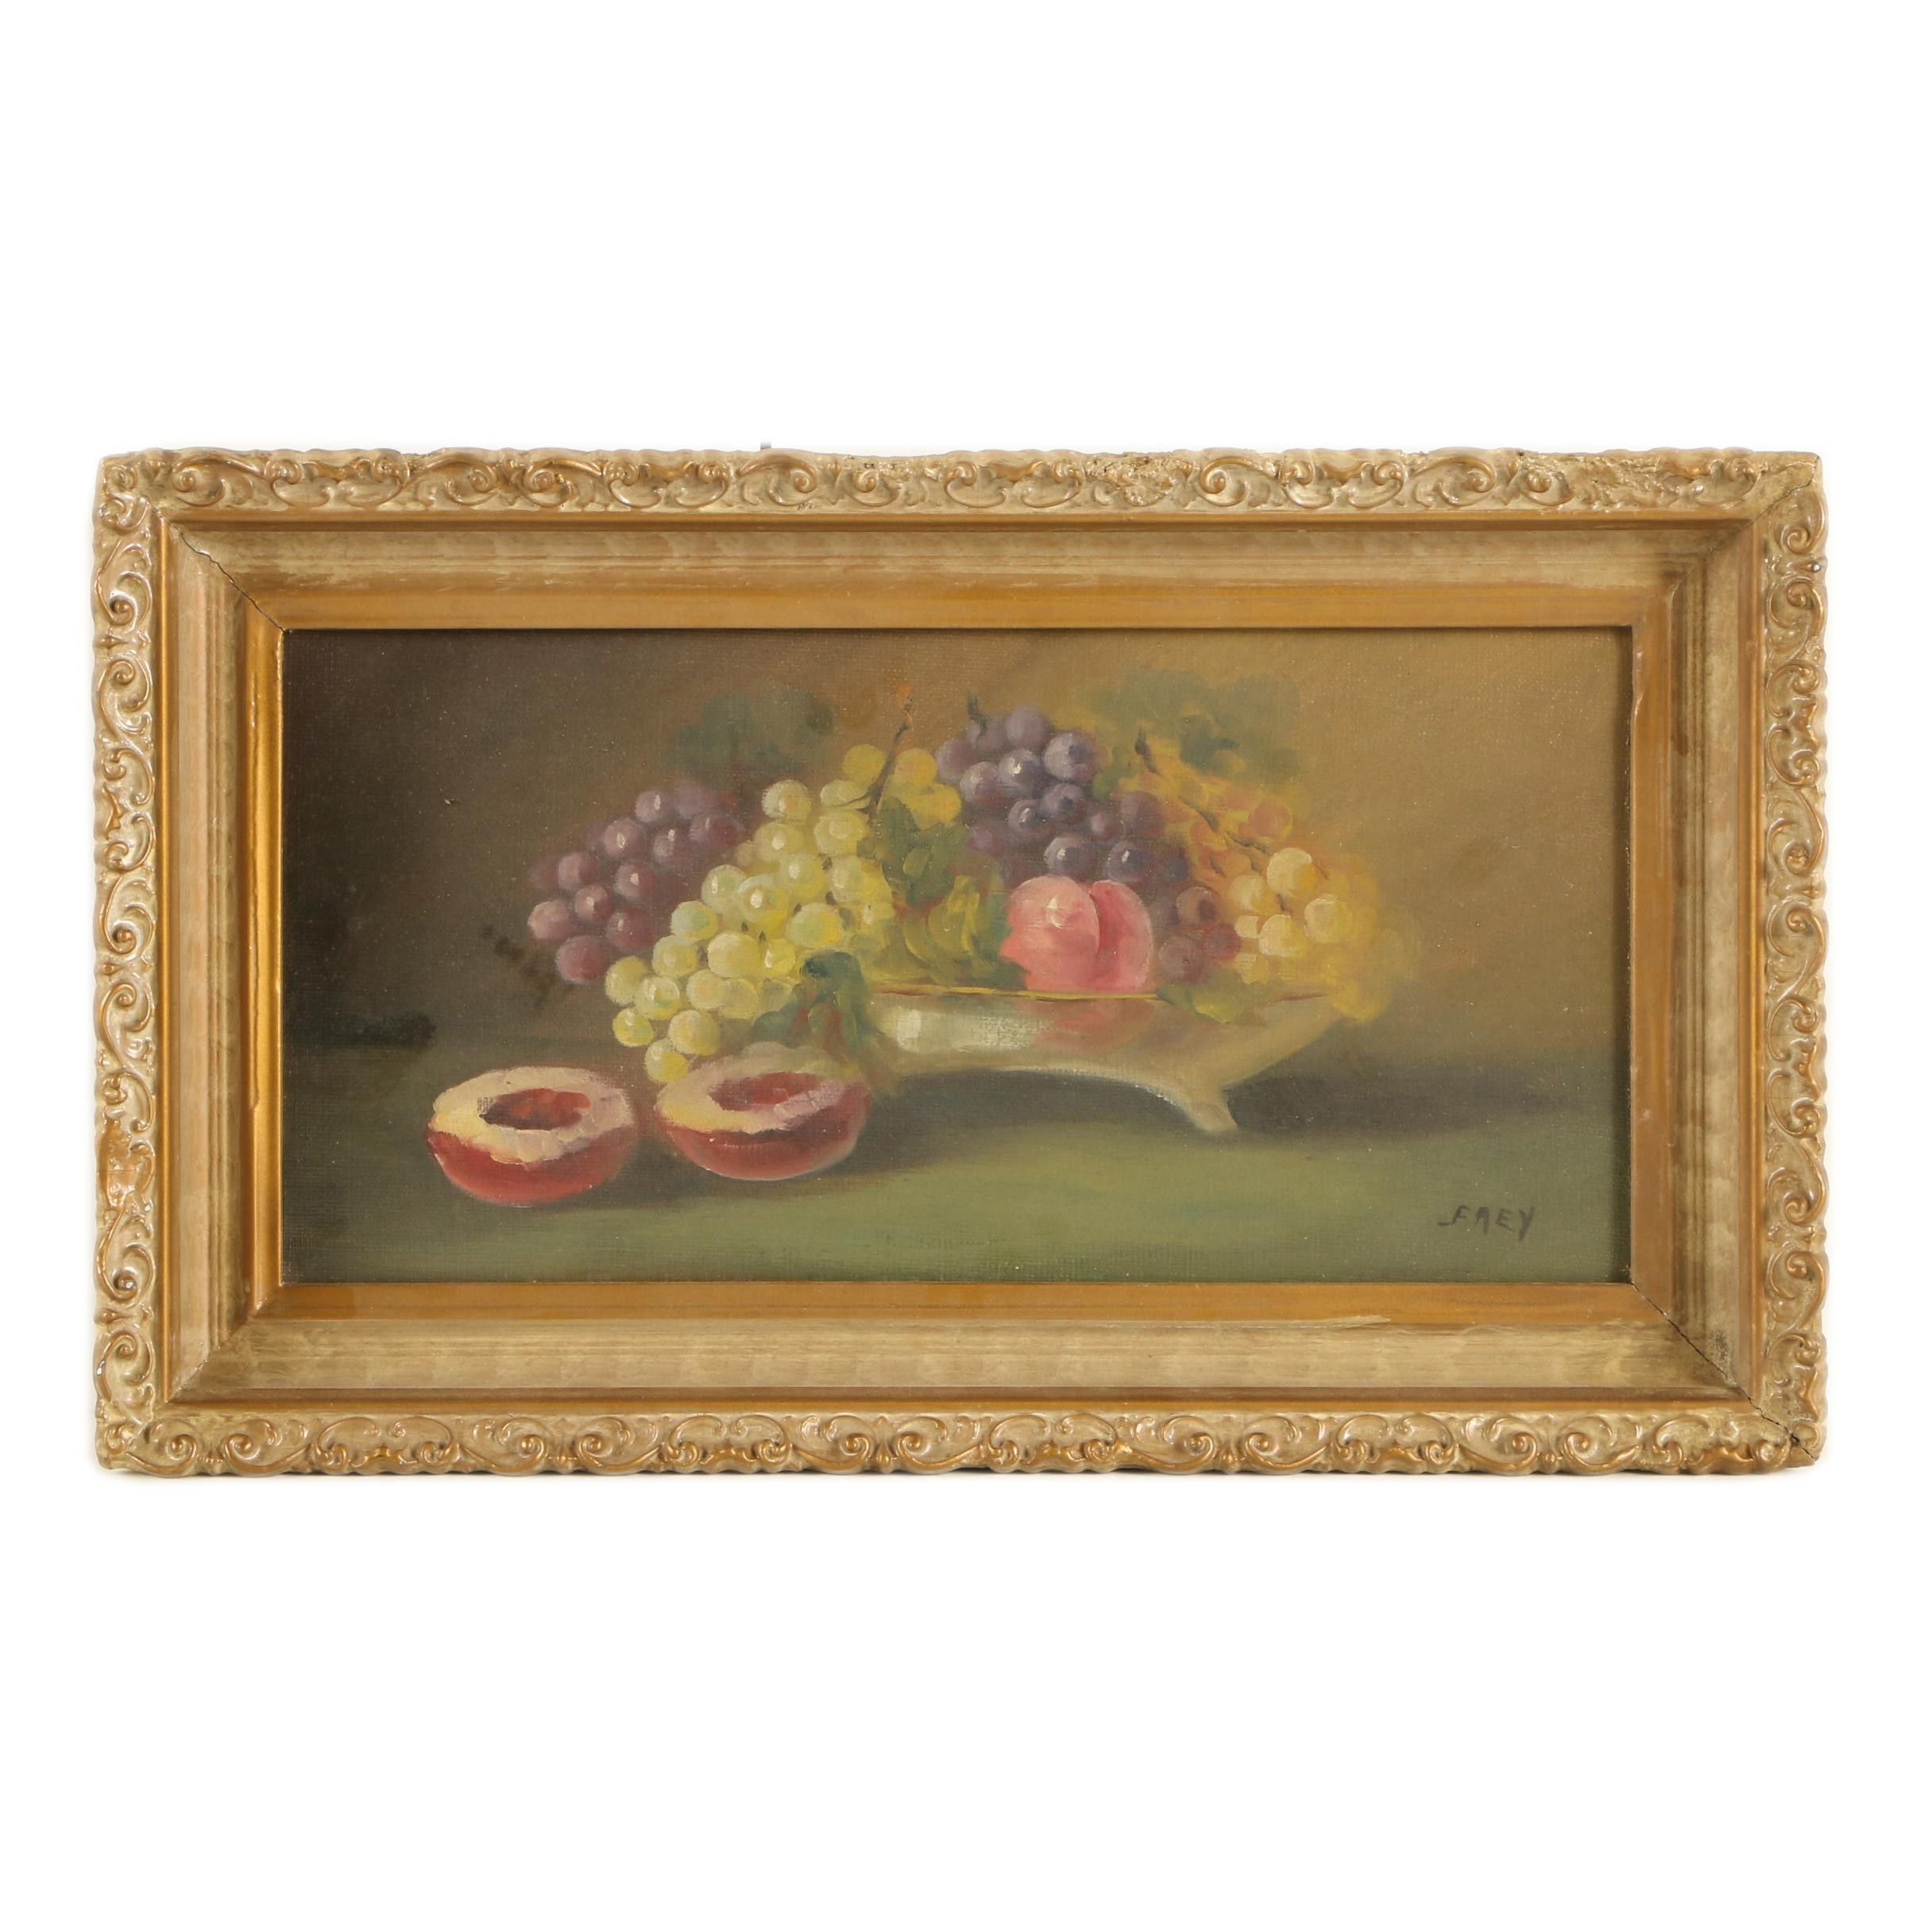 Frey Oil Painting of a Still Life